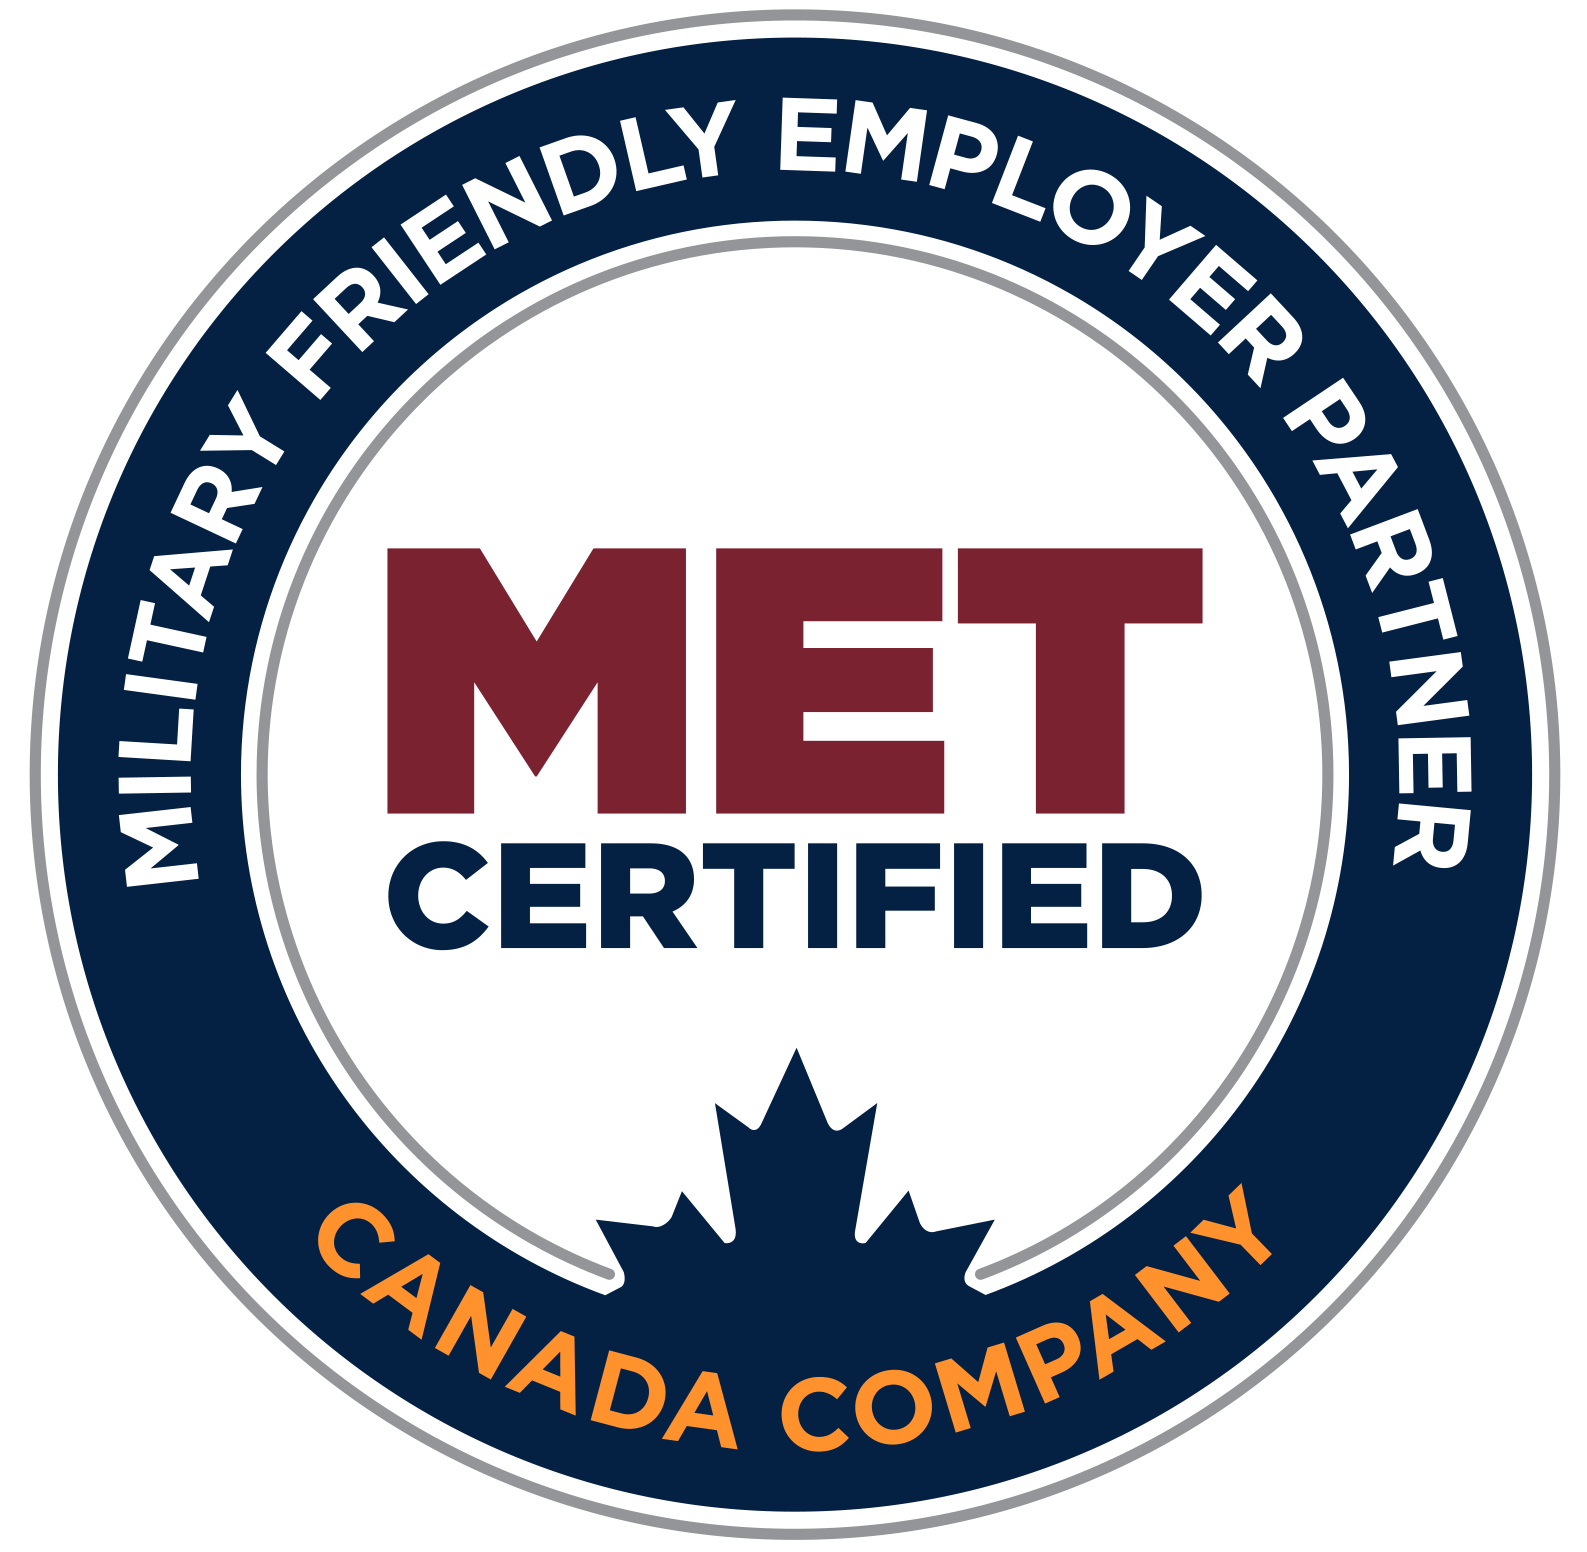 Military Friendly employer partner - MET certified